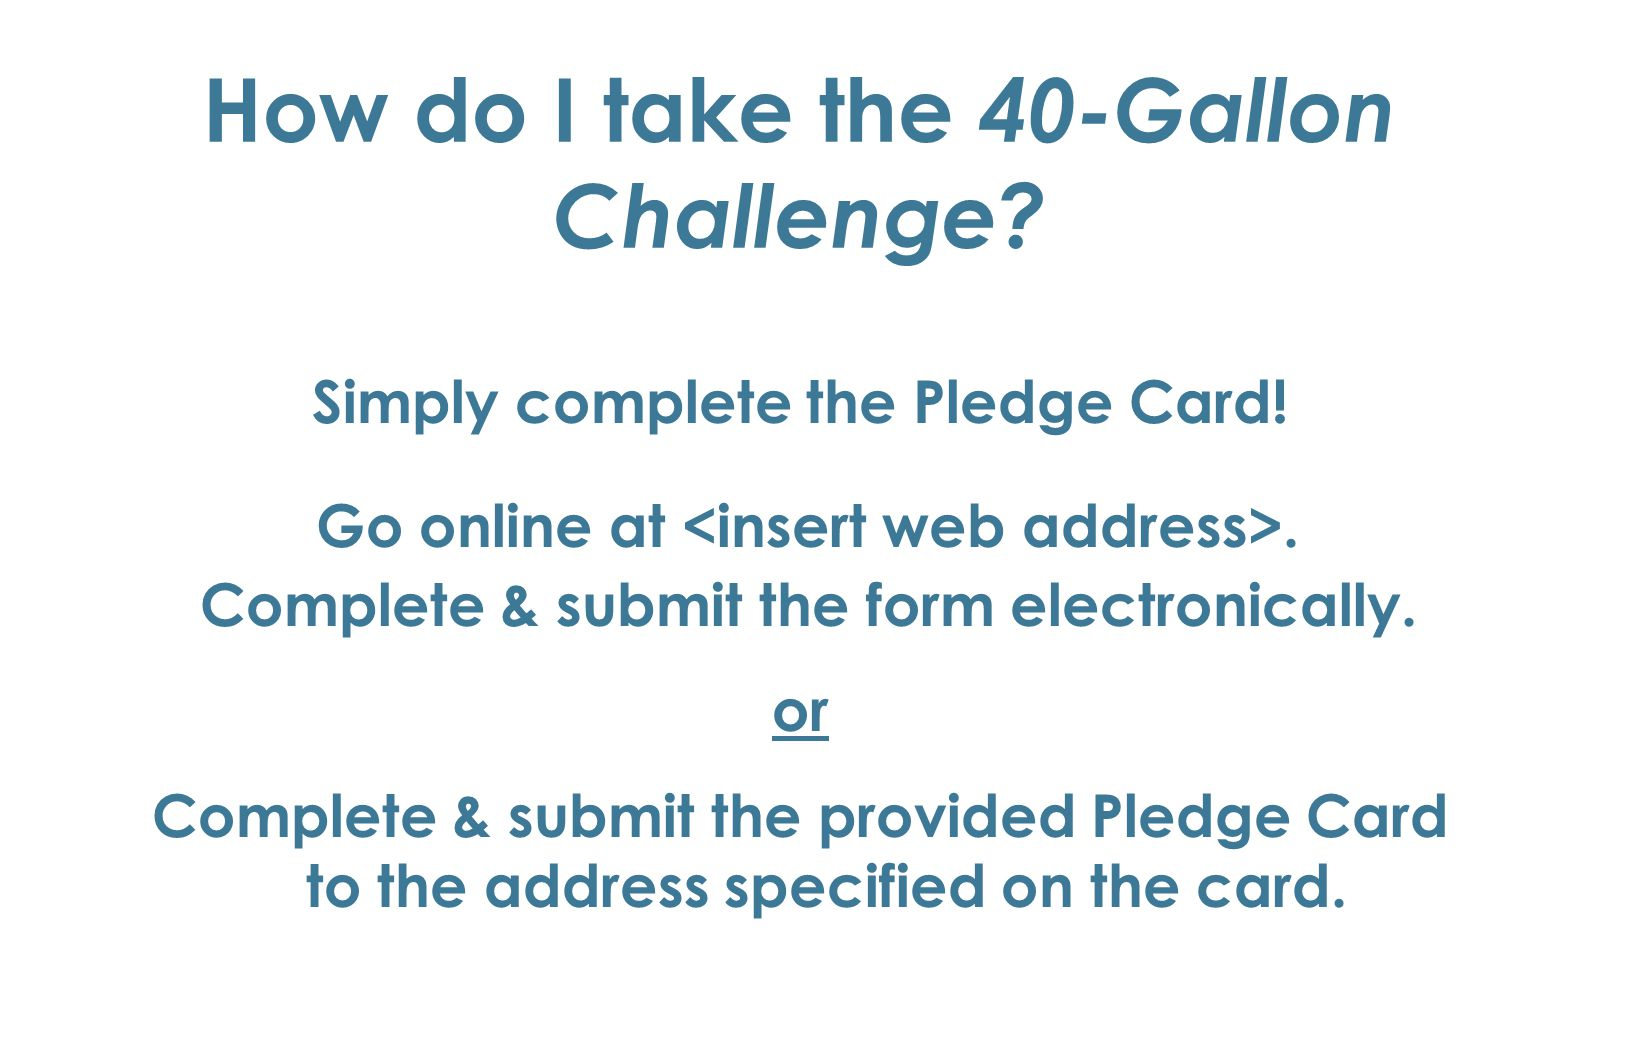 How do I take the 40-Gallon Challenge. Simply complete the Pledge Card.